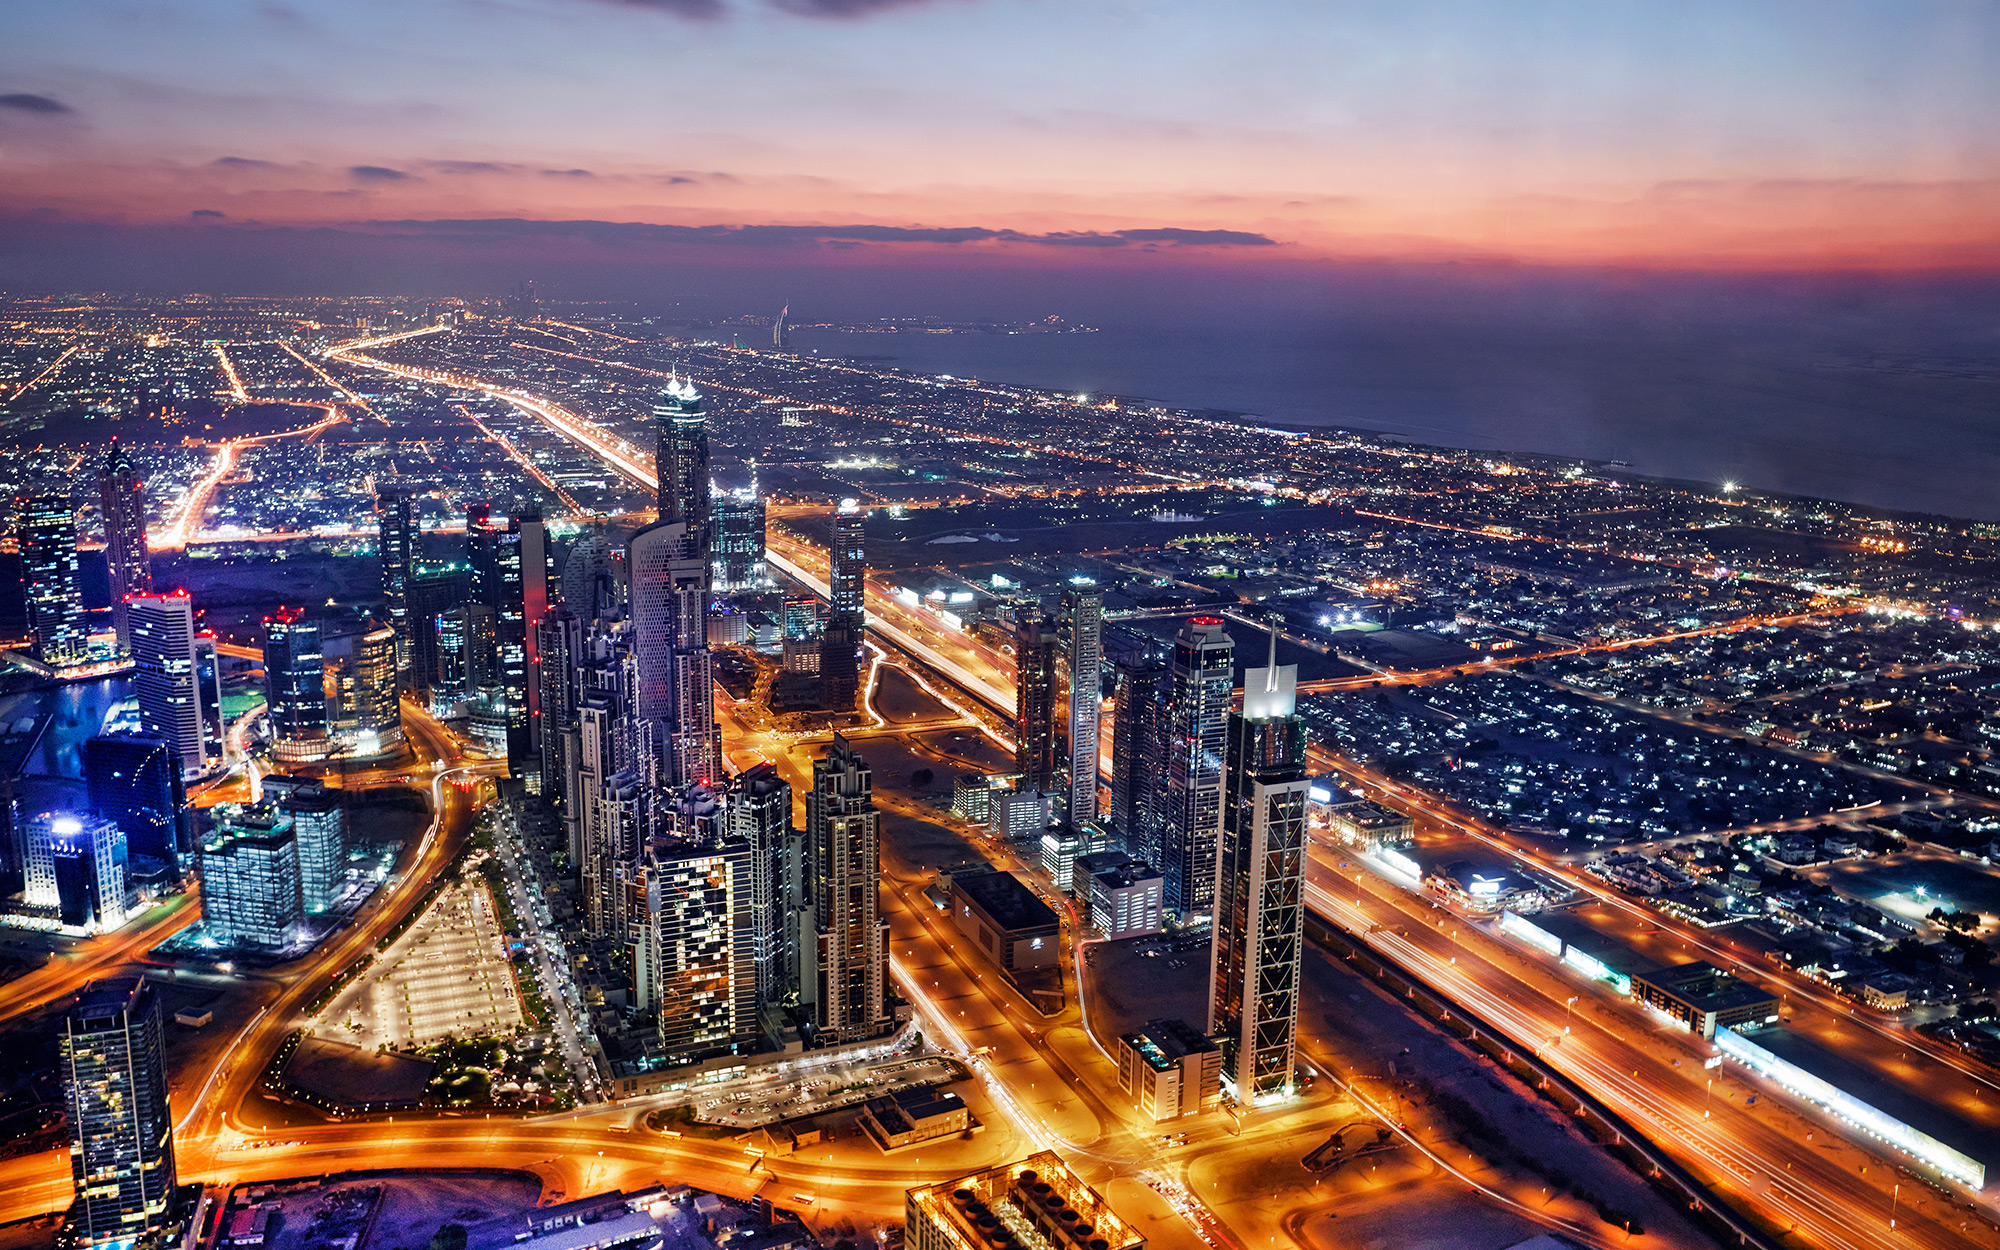 Elevated cityscape of Dubai illuminated at dusk